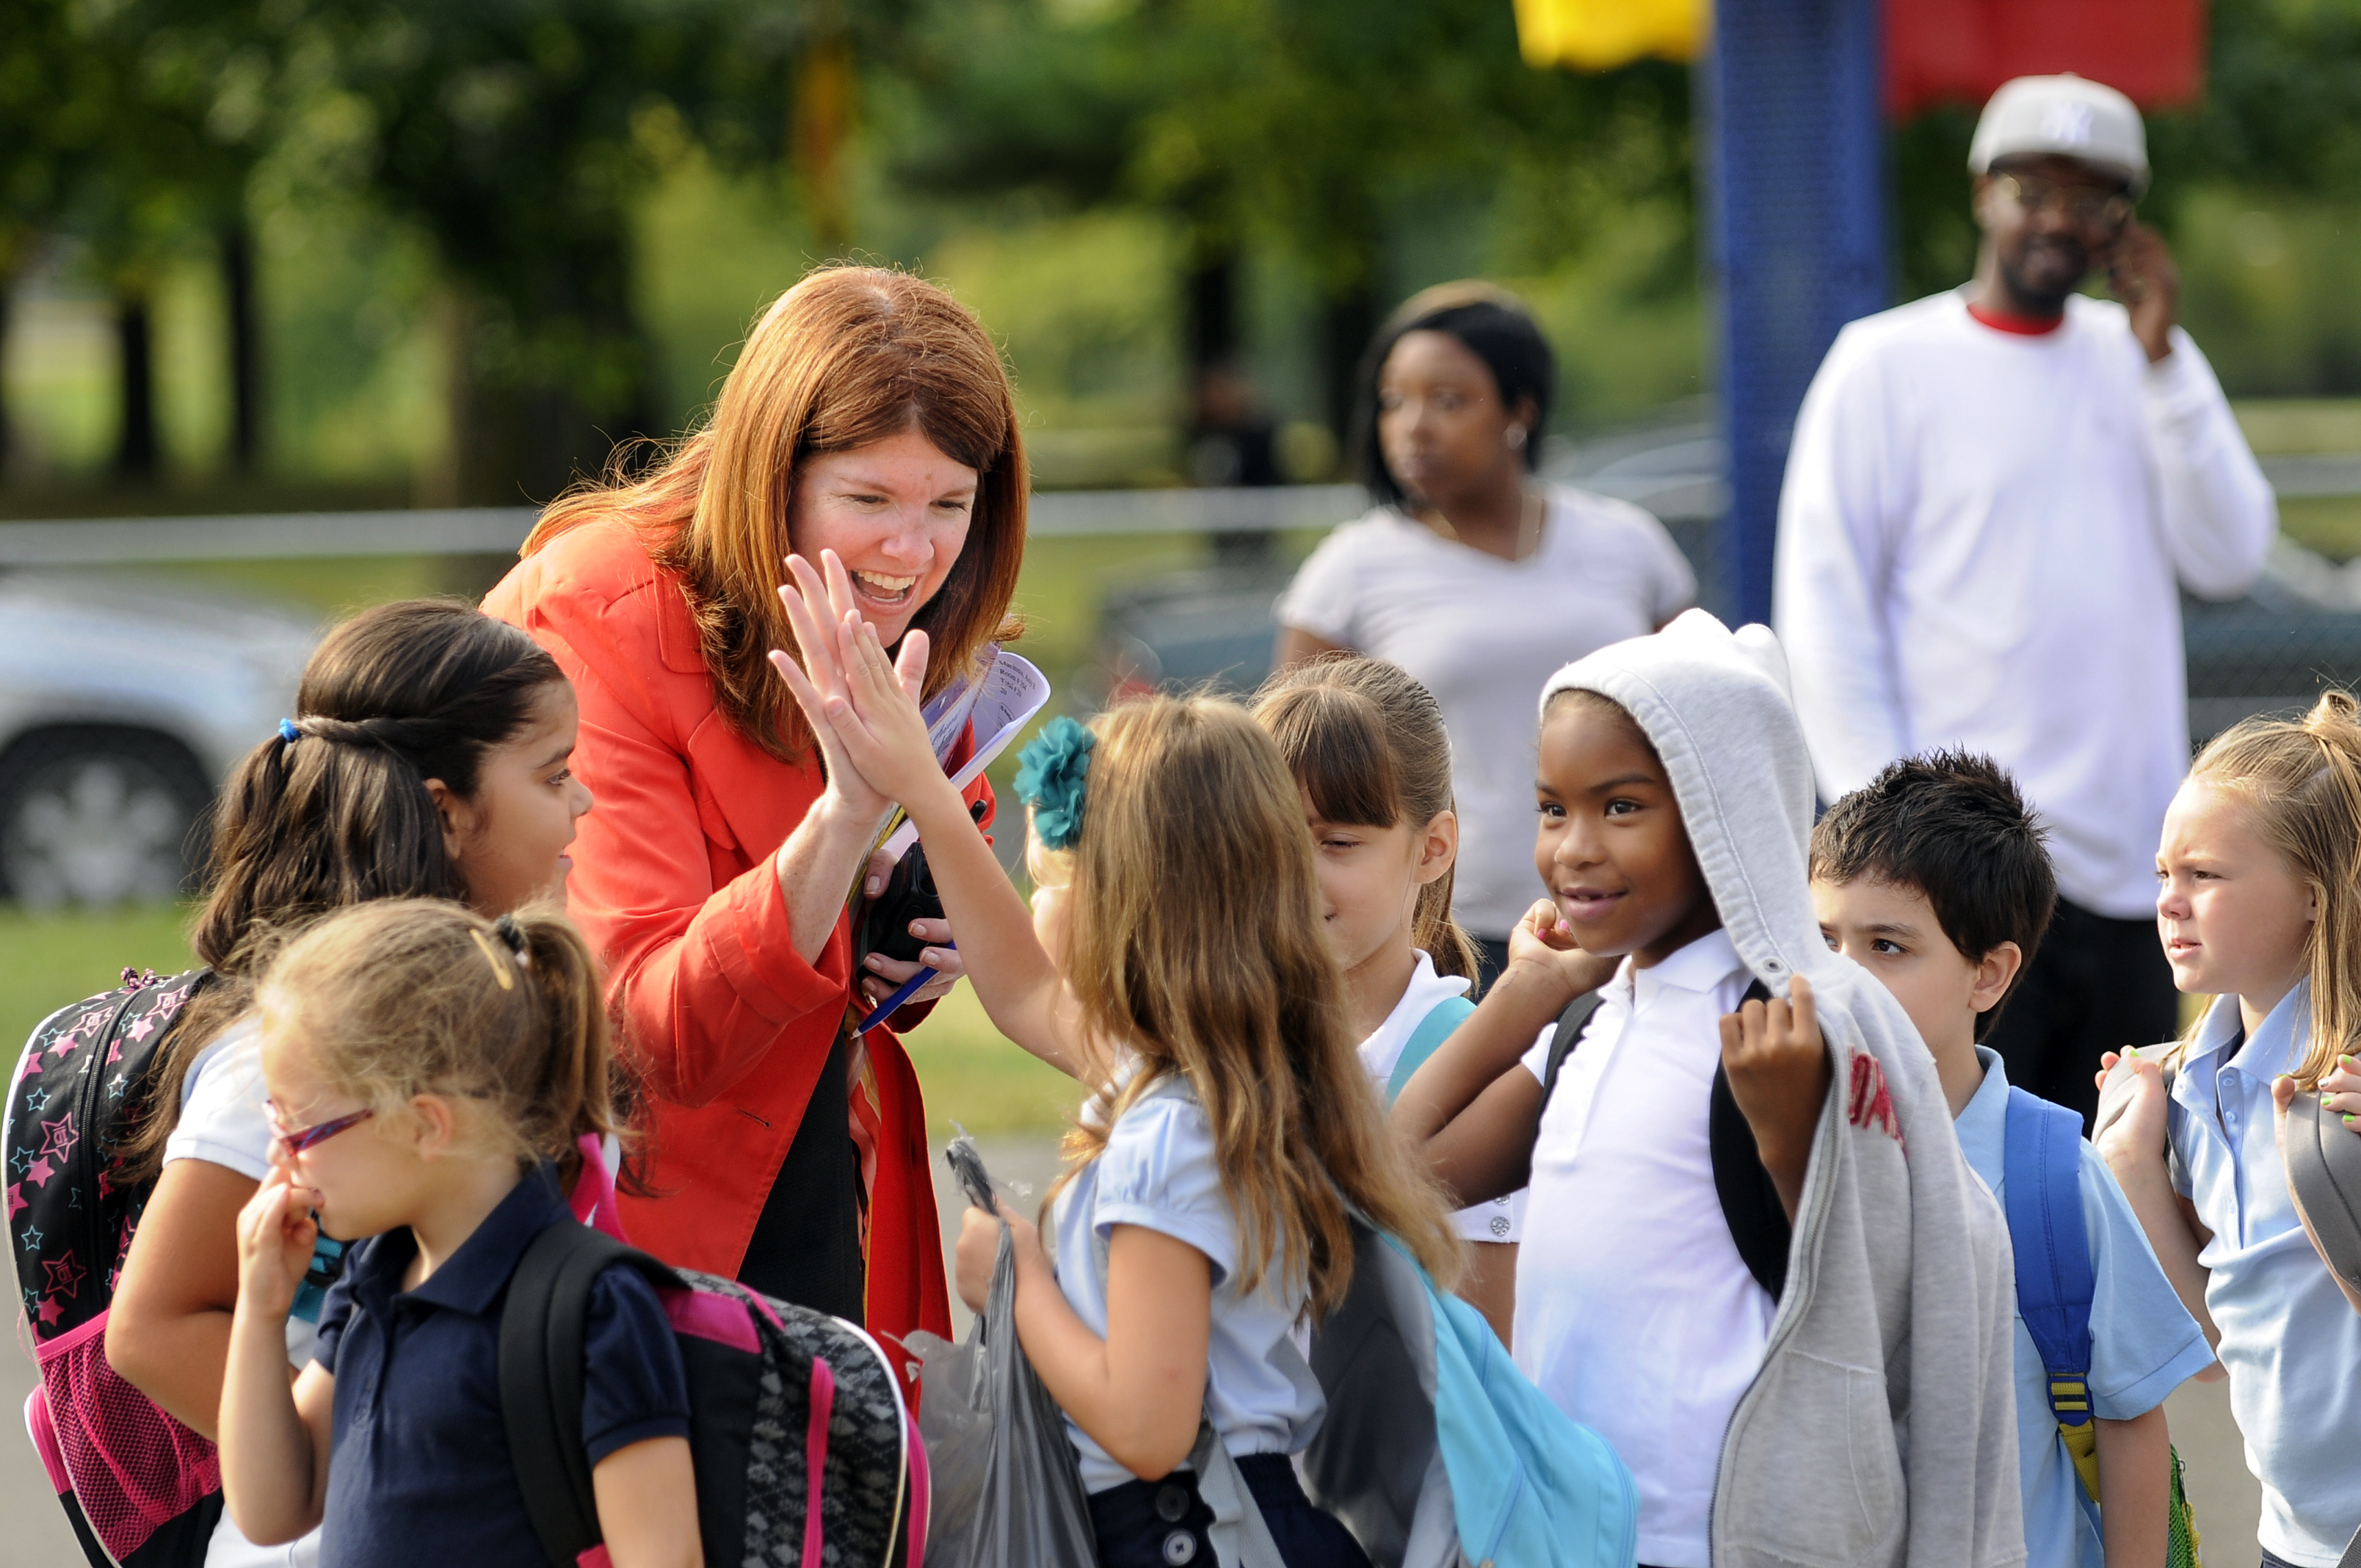 NEW BRITAIN 09/03/13 - Vance Village Elementary School principal Sarah Harris high fives a 2nd-grade student just before the start of the first day of school in New Britain.  Vance Village is a K-5 school with a student body of about 500. CLOE POISSON|cpoisson@courant.com